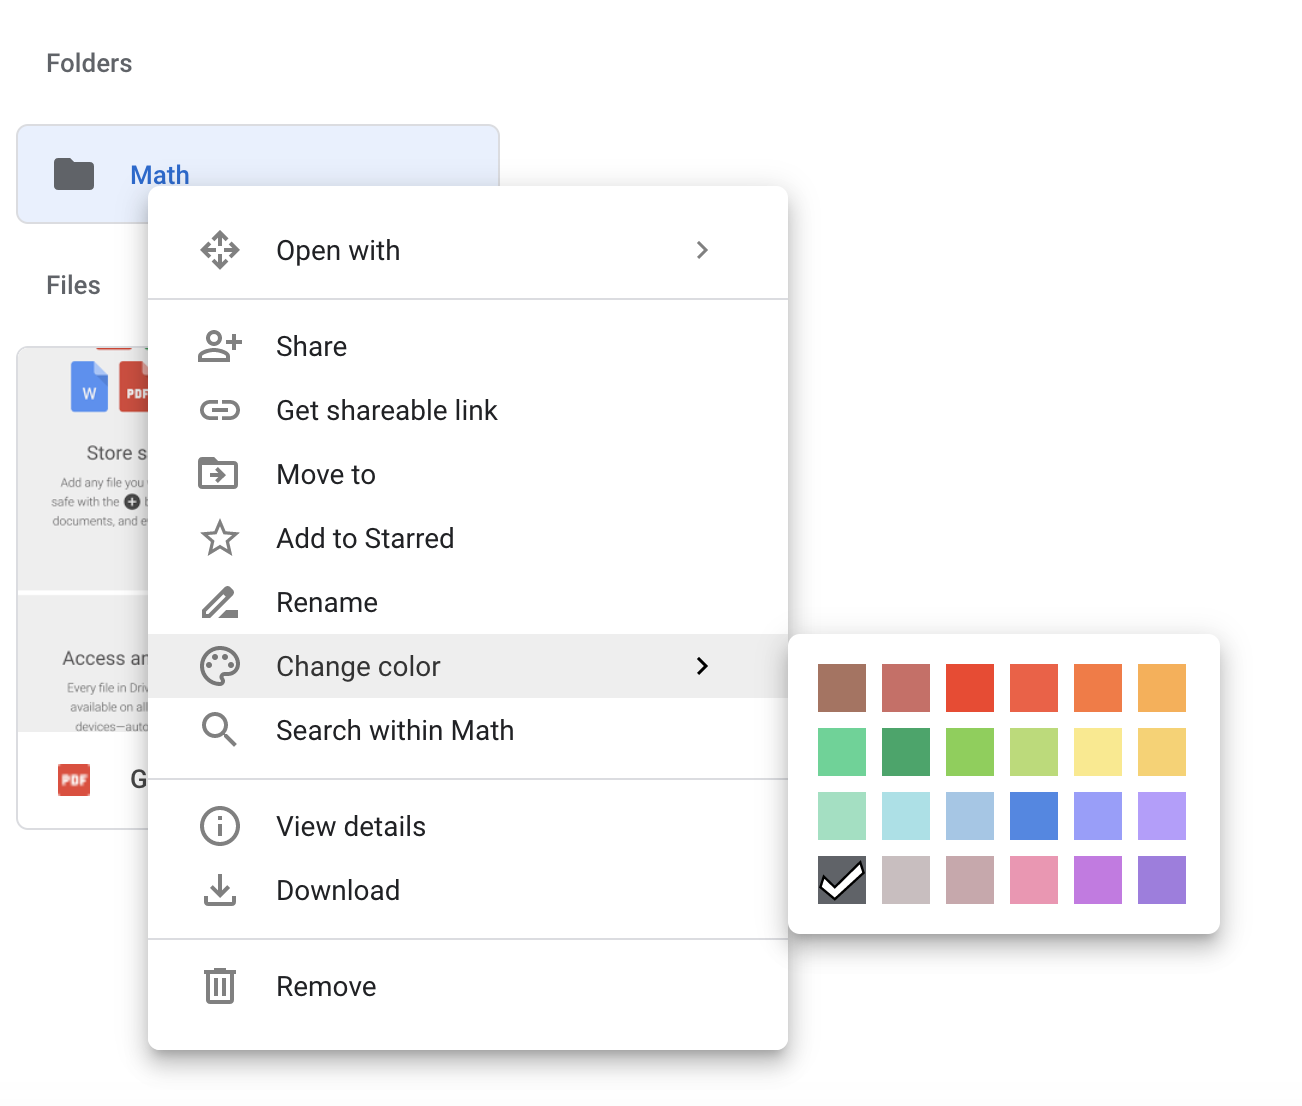 Changing the color of a Google folder